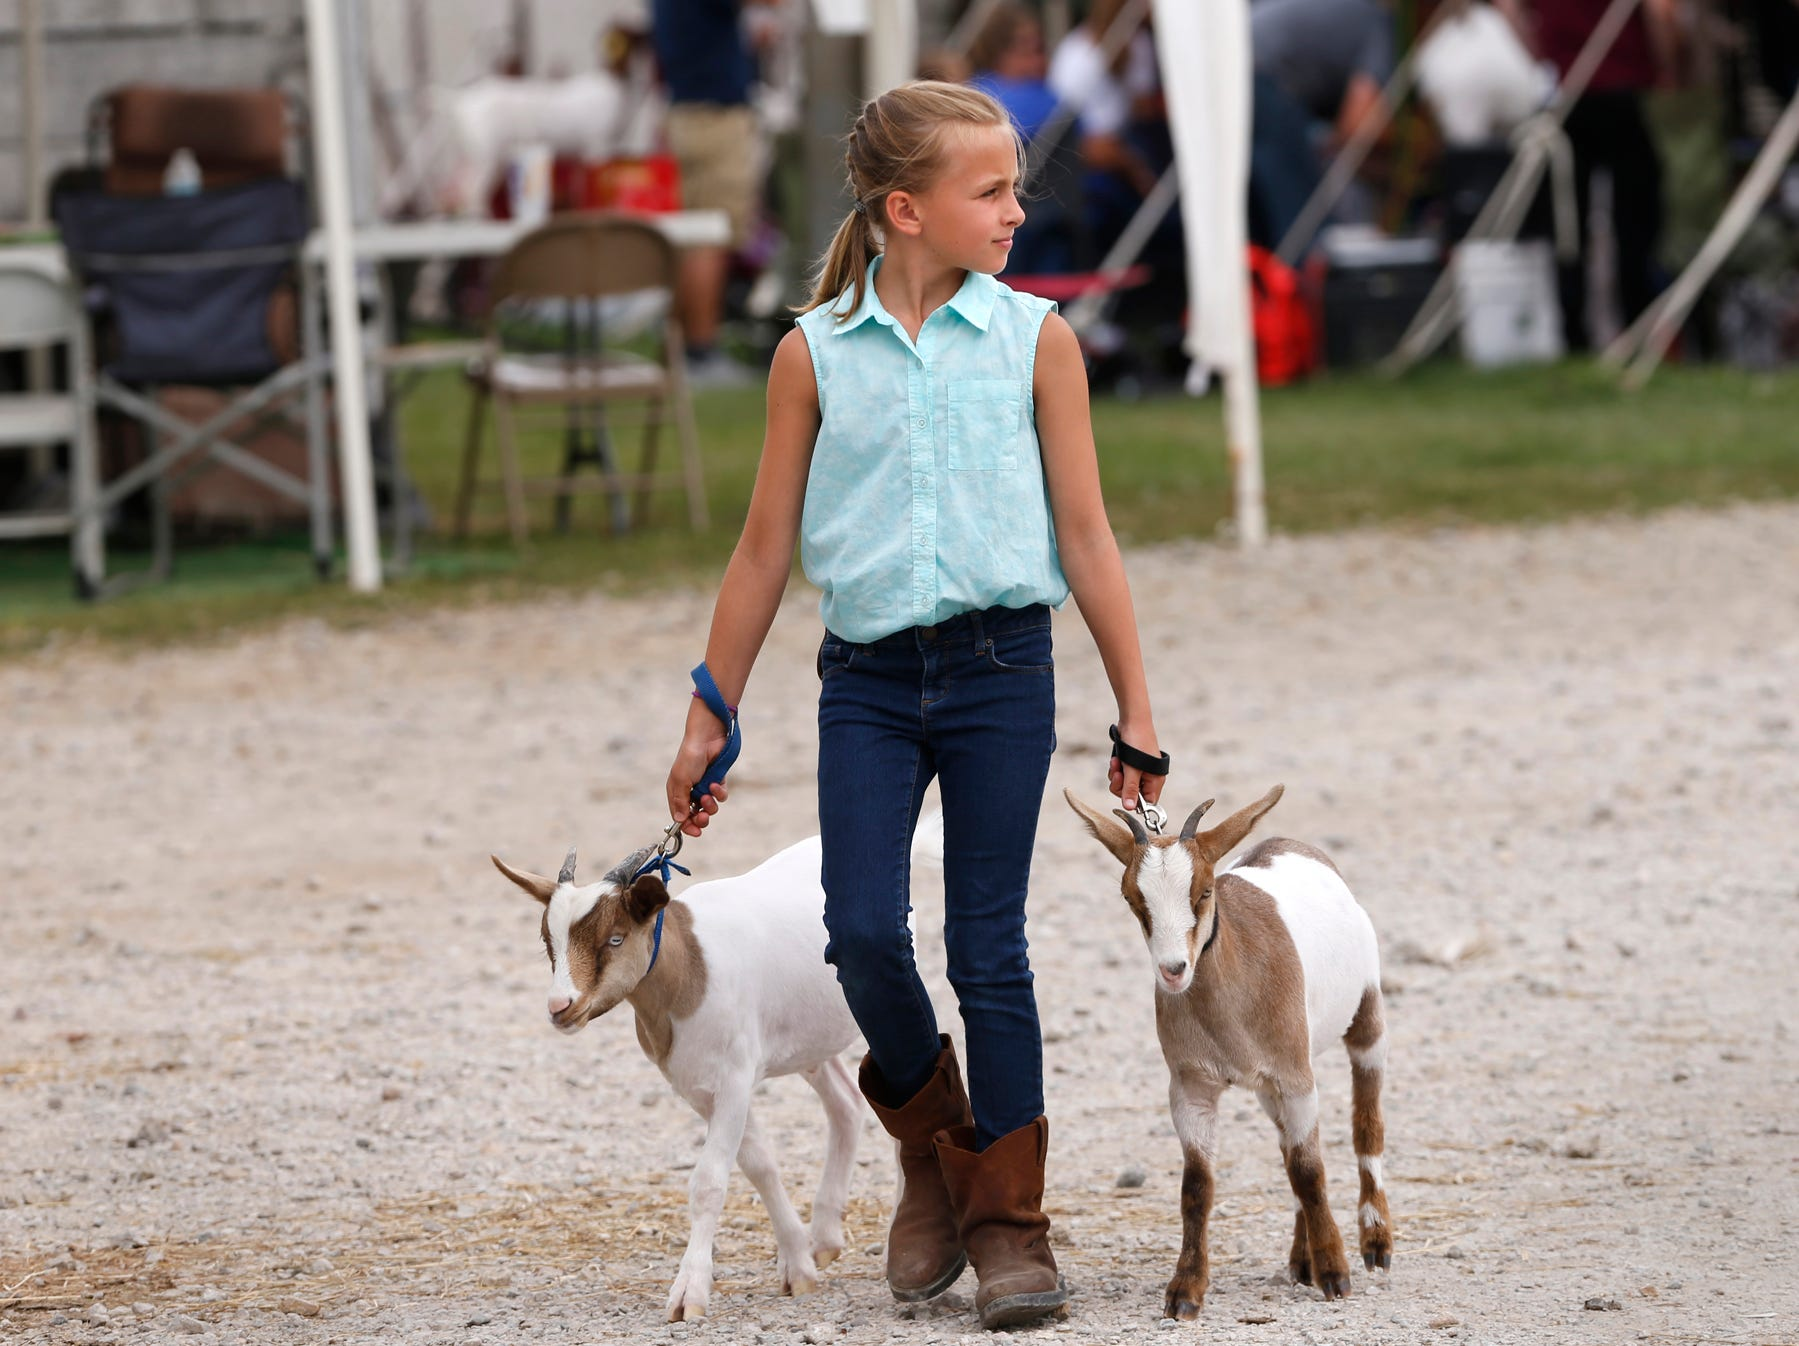 Maddison Crum, 11, walks her Myotonic goats at the Tippecanoe County 4-H Fair Monday, July 23, 2018, in Lafayette. Crum will be a sixth grade student at Southwestern Middle School in the fall.